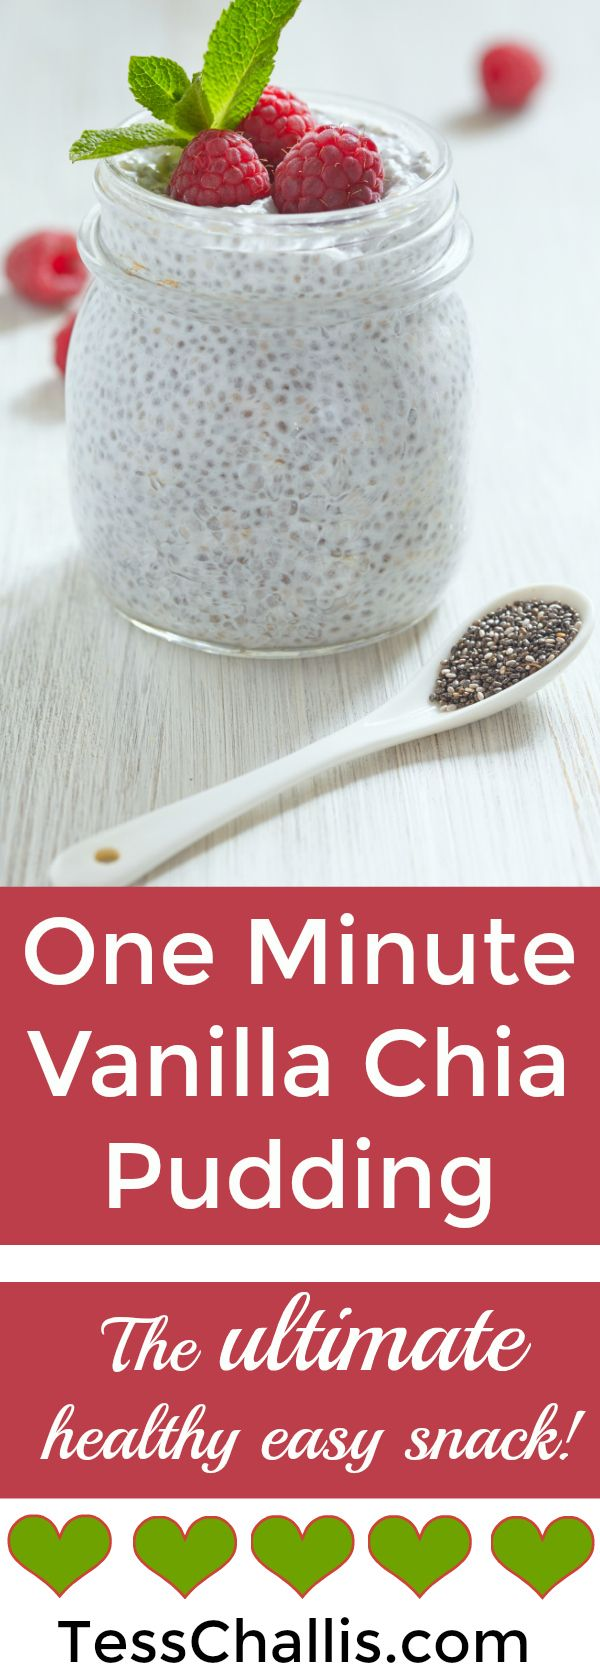 One Minute Vanilla Chia Pudding- the ultimate easy healthy snack! http://tesschallis.com/recipes/2017/5/14/one-minute-vanilla-chia-pudding #vegan #chia #glutenfree #healthysnacks #recipe